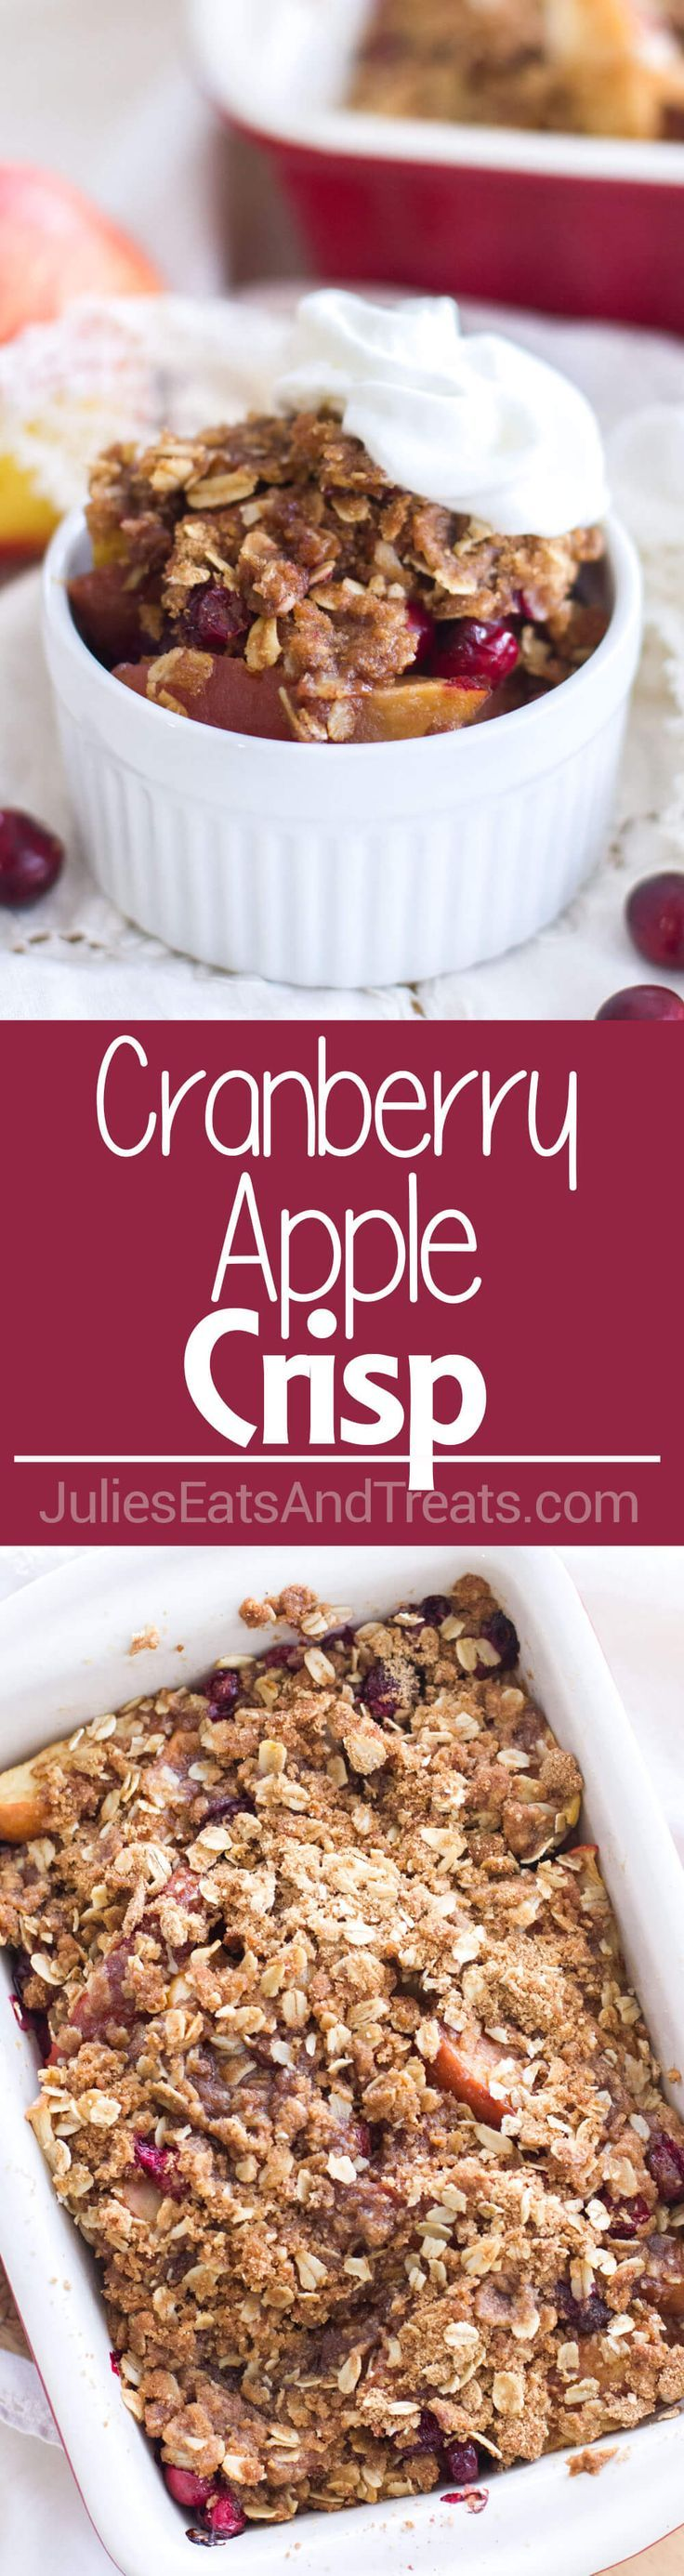 Cranberry Apple Crisp with Brown Sugar Cinnamon Crumble ~ Easy fruit crisp recipe filled with apples and cranberries! via /julieseats/